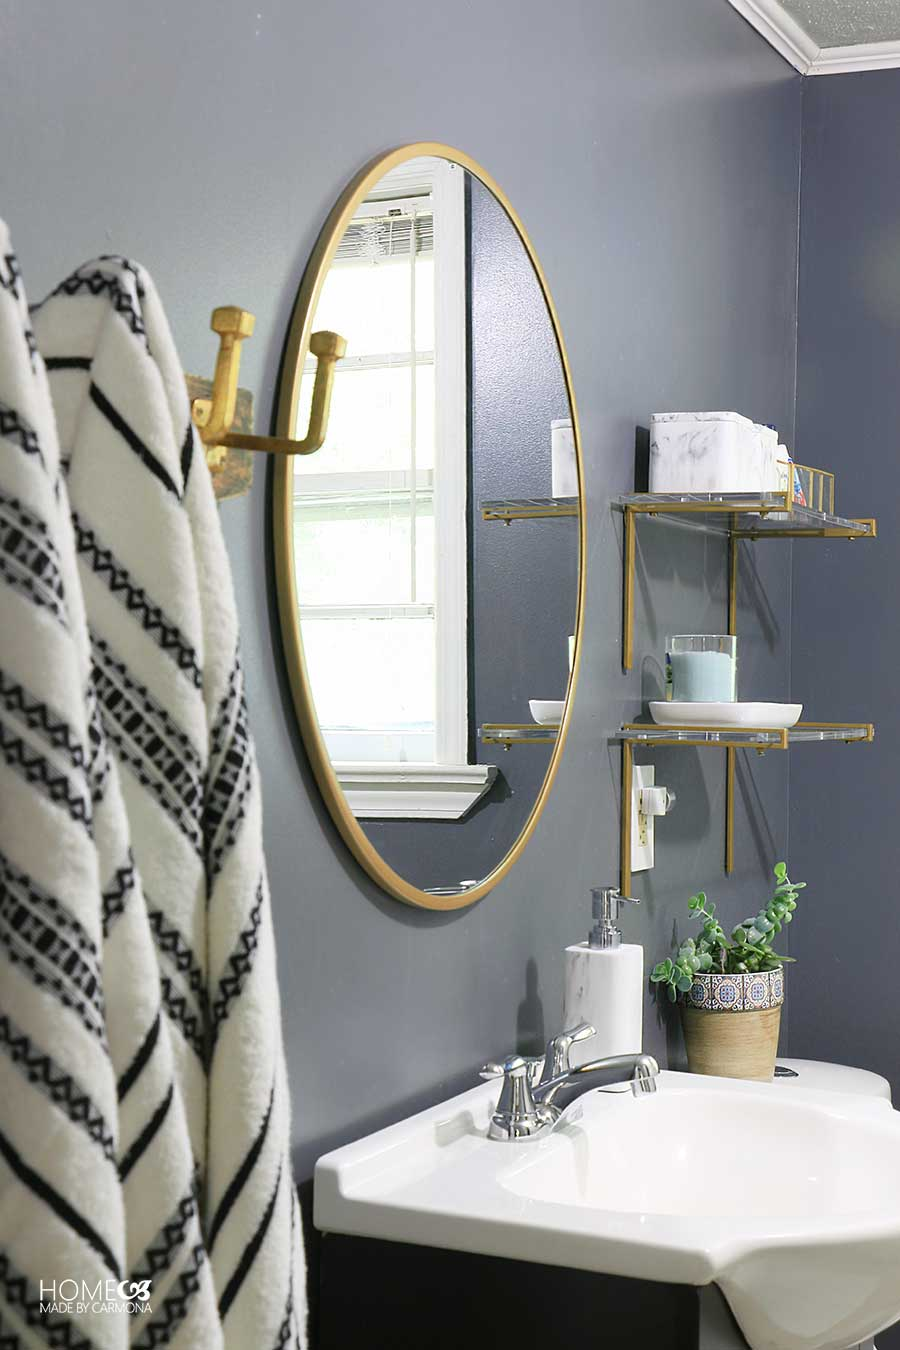 Bathroom mirror sink towels and shelves